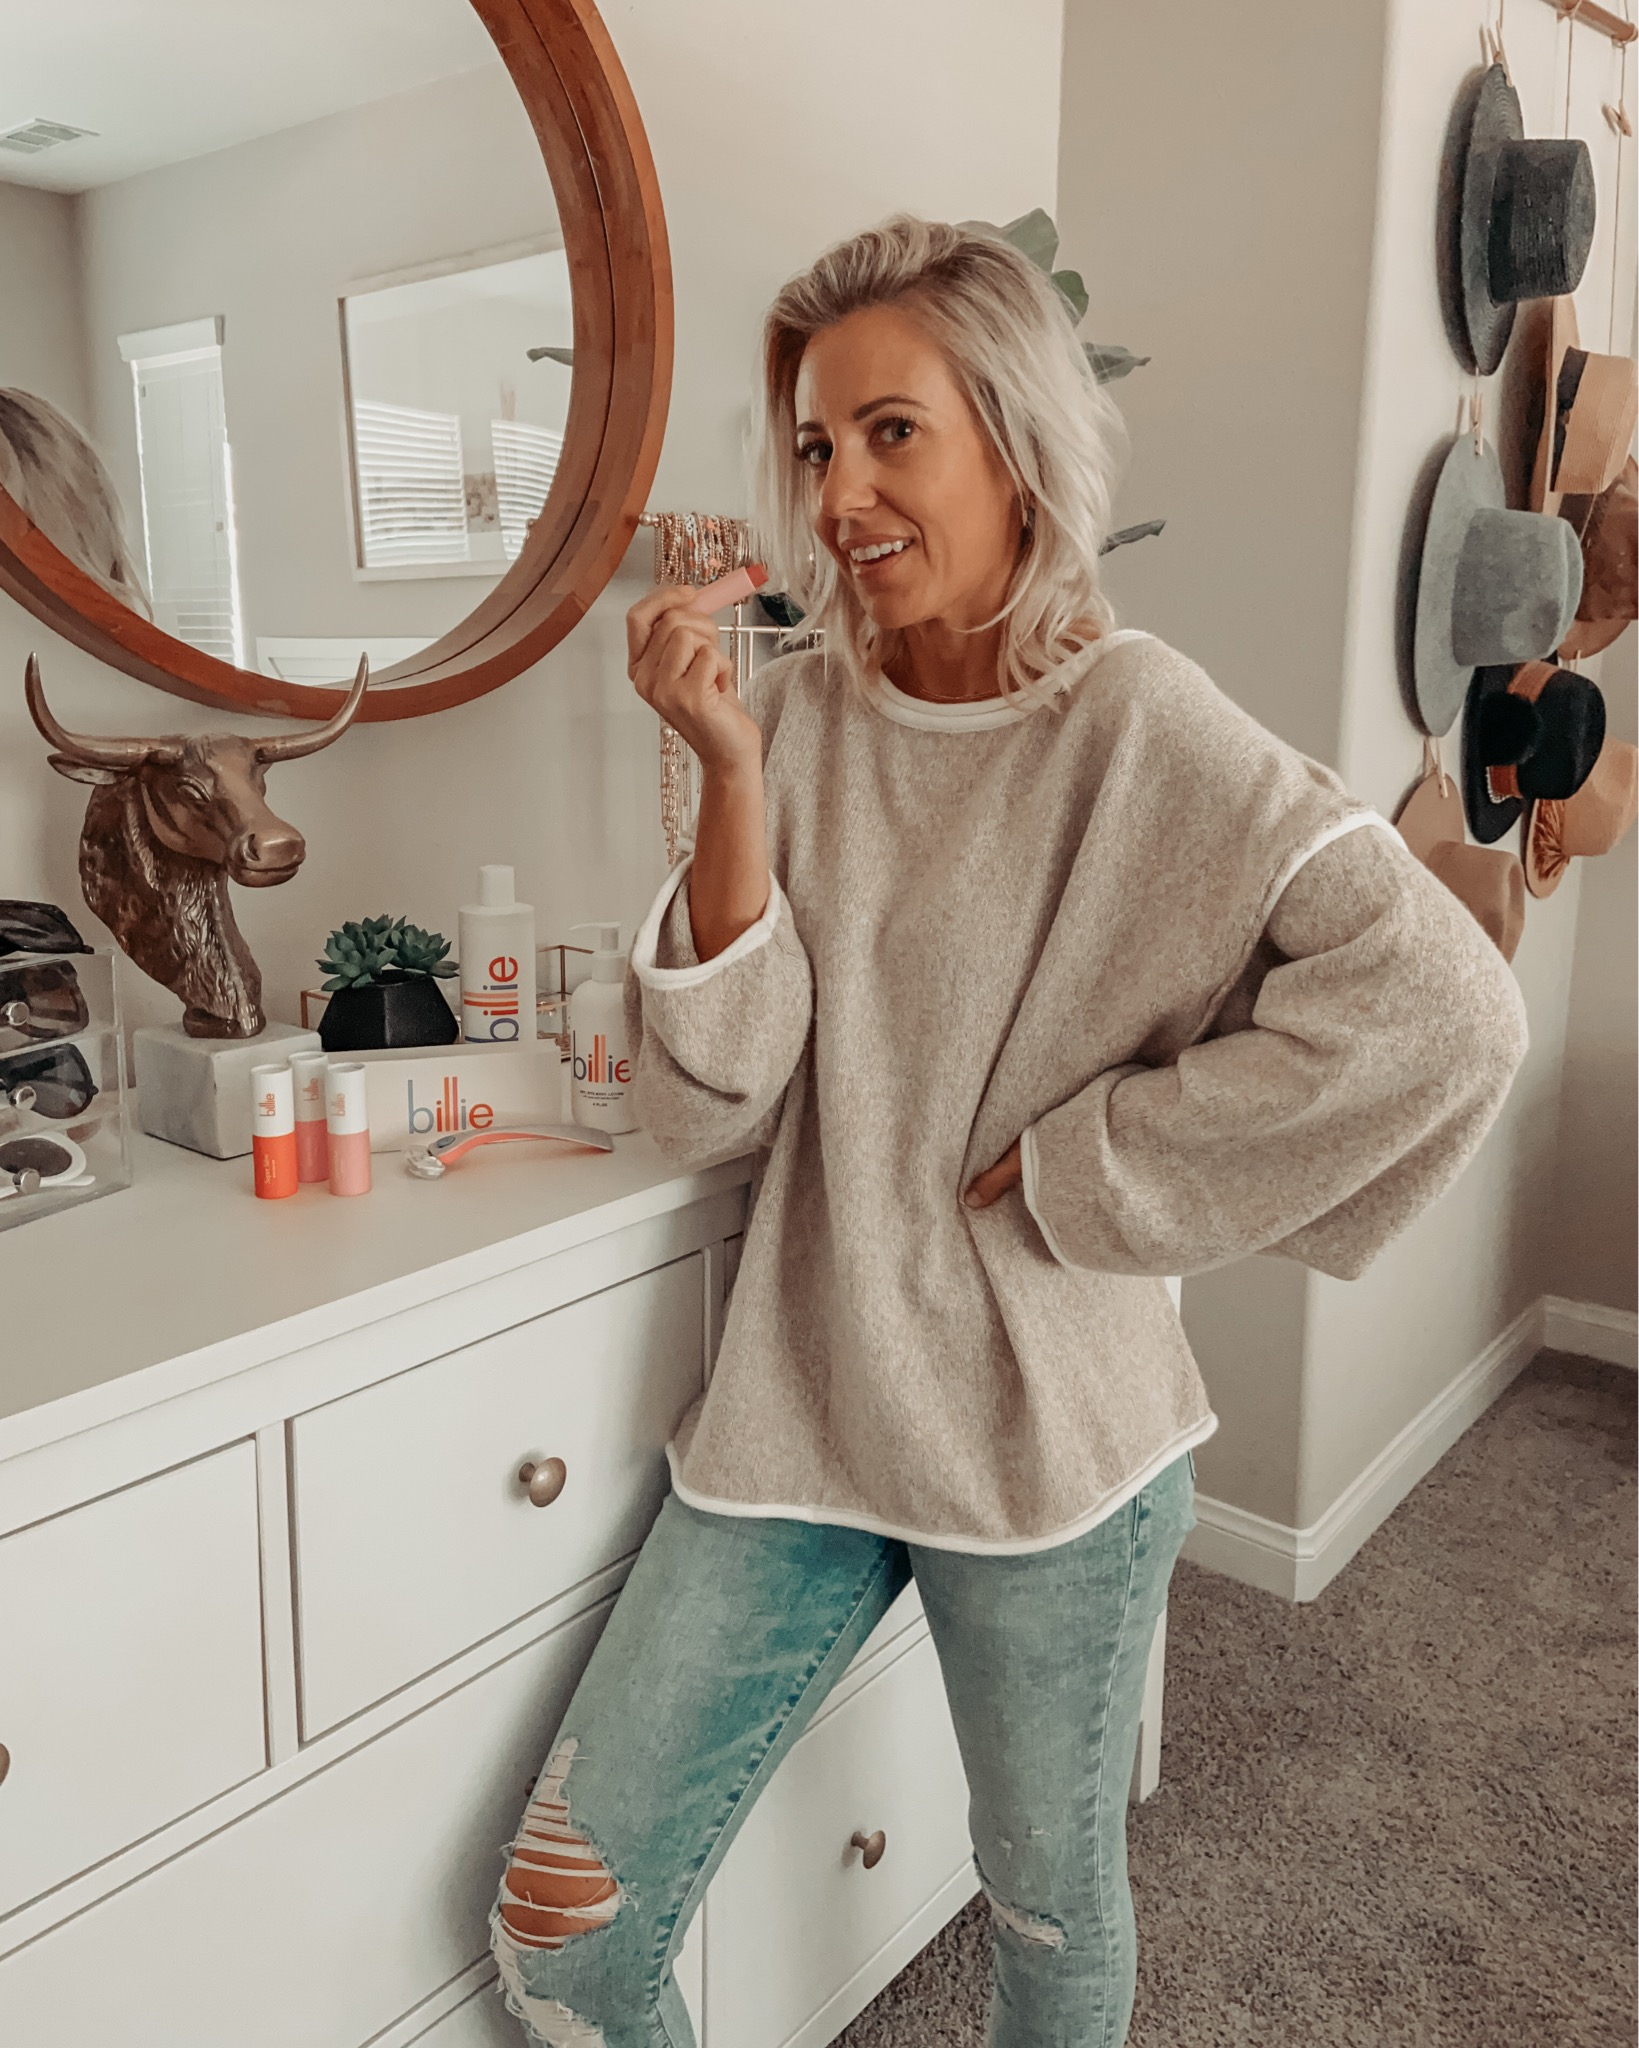 TOP 10 MOST LOVED FROM AMAZON IN 2020- Sharing the most shopped Amazon favorite finds in 2020. Lots of affordable fashion, jewelry + more